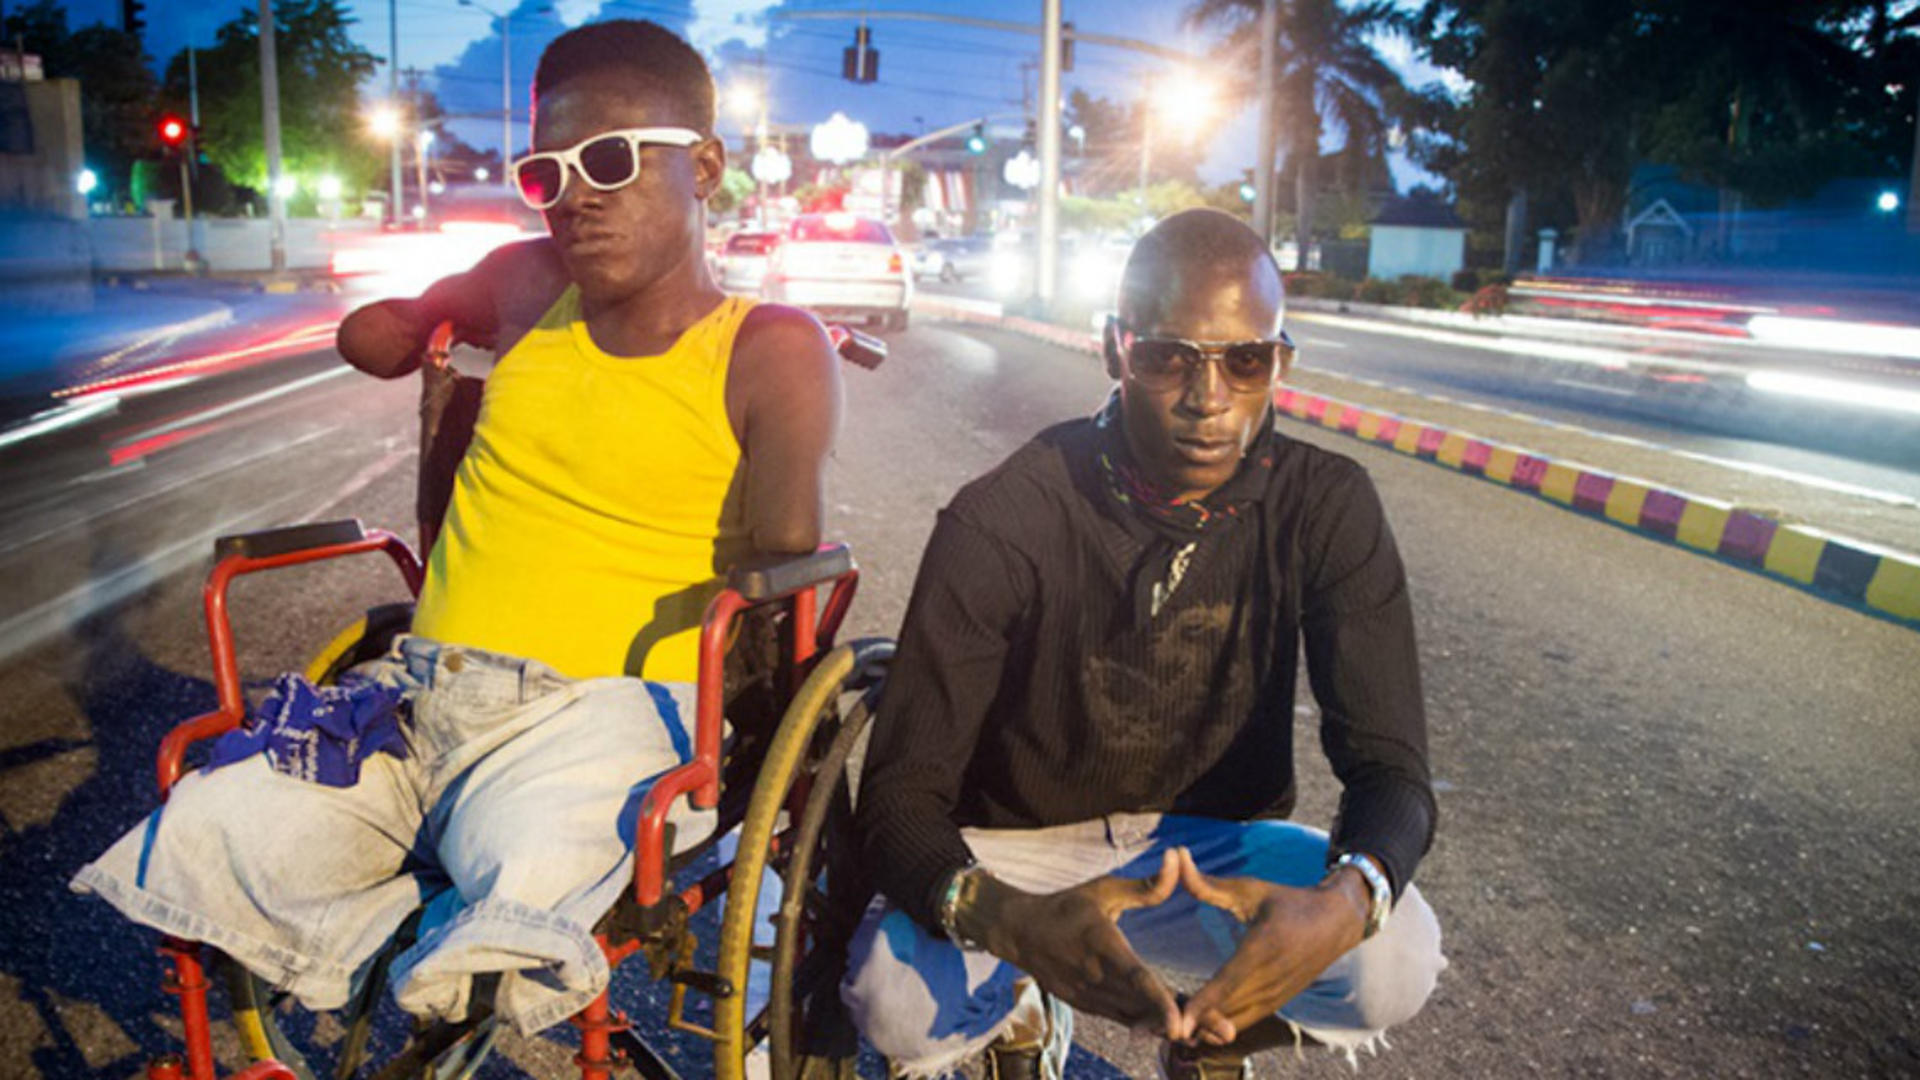 Two men, one in a wheelchair, pose in a busy roadway at night